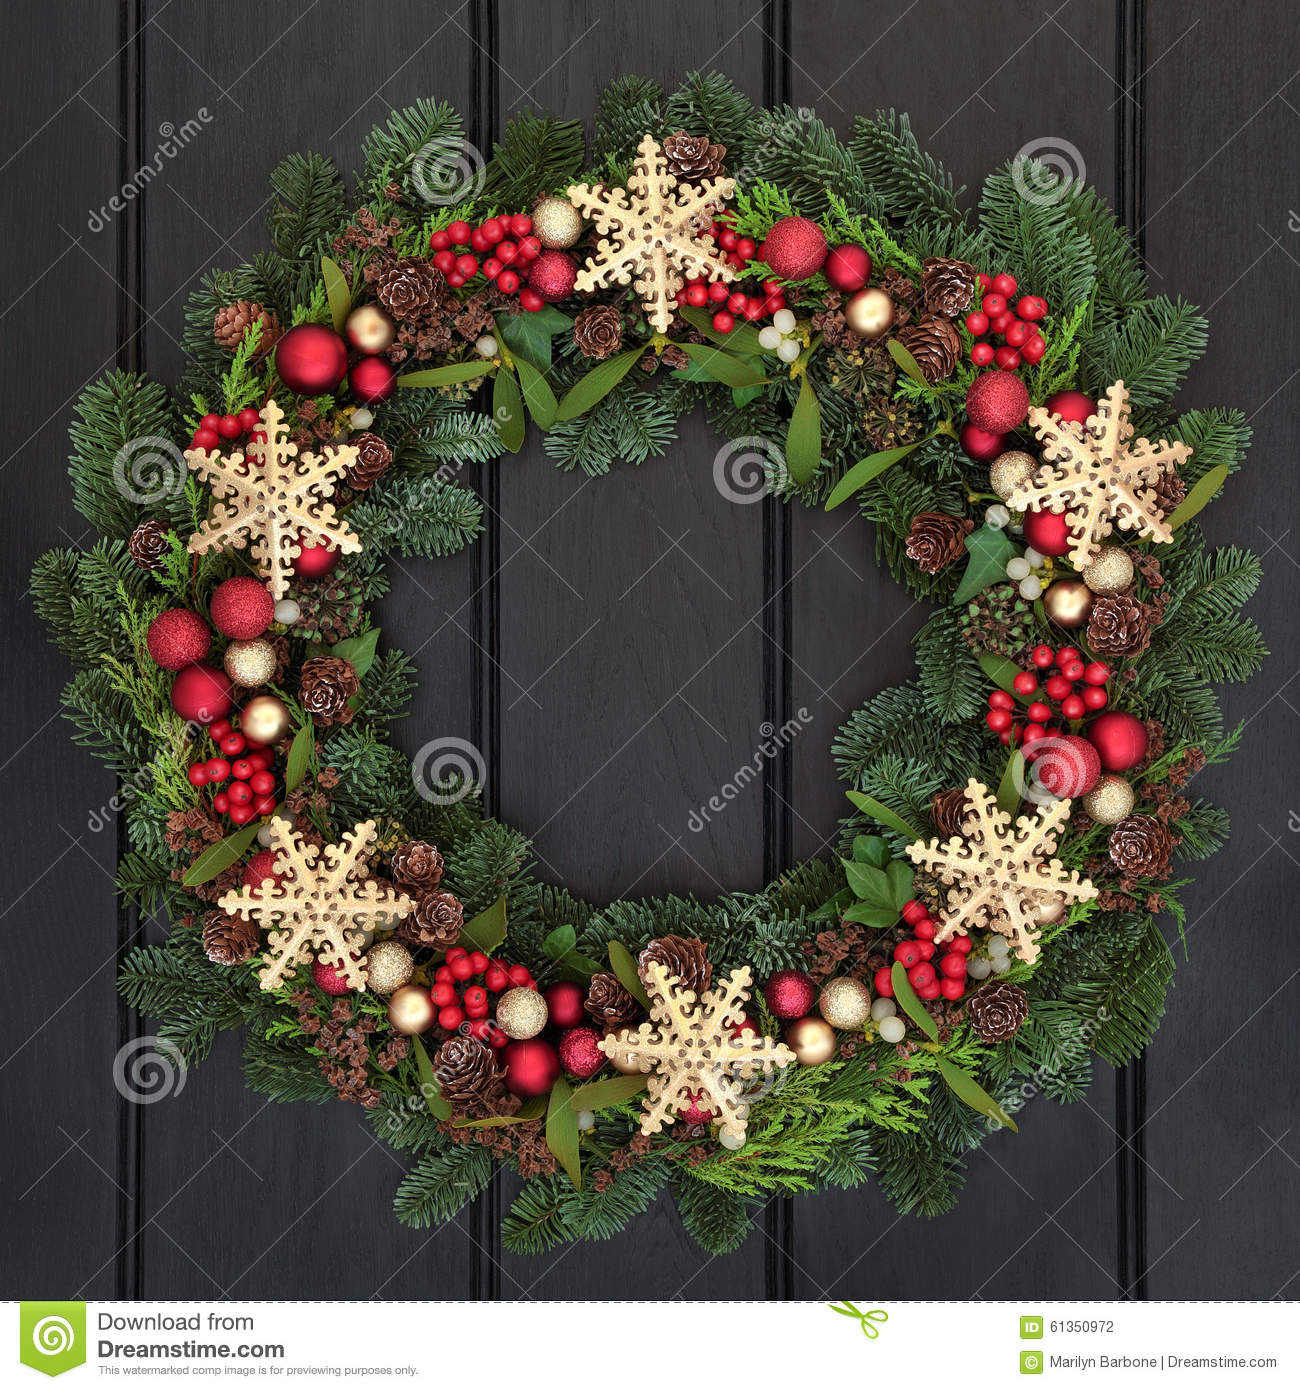 Snowflake Wreath Stock Photo - Image: 61350972